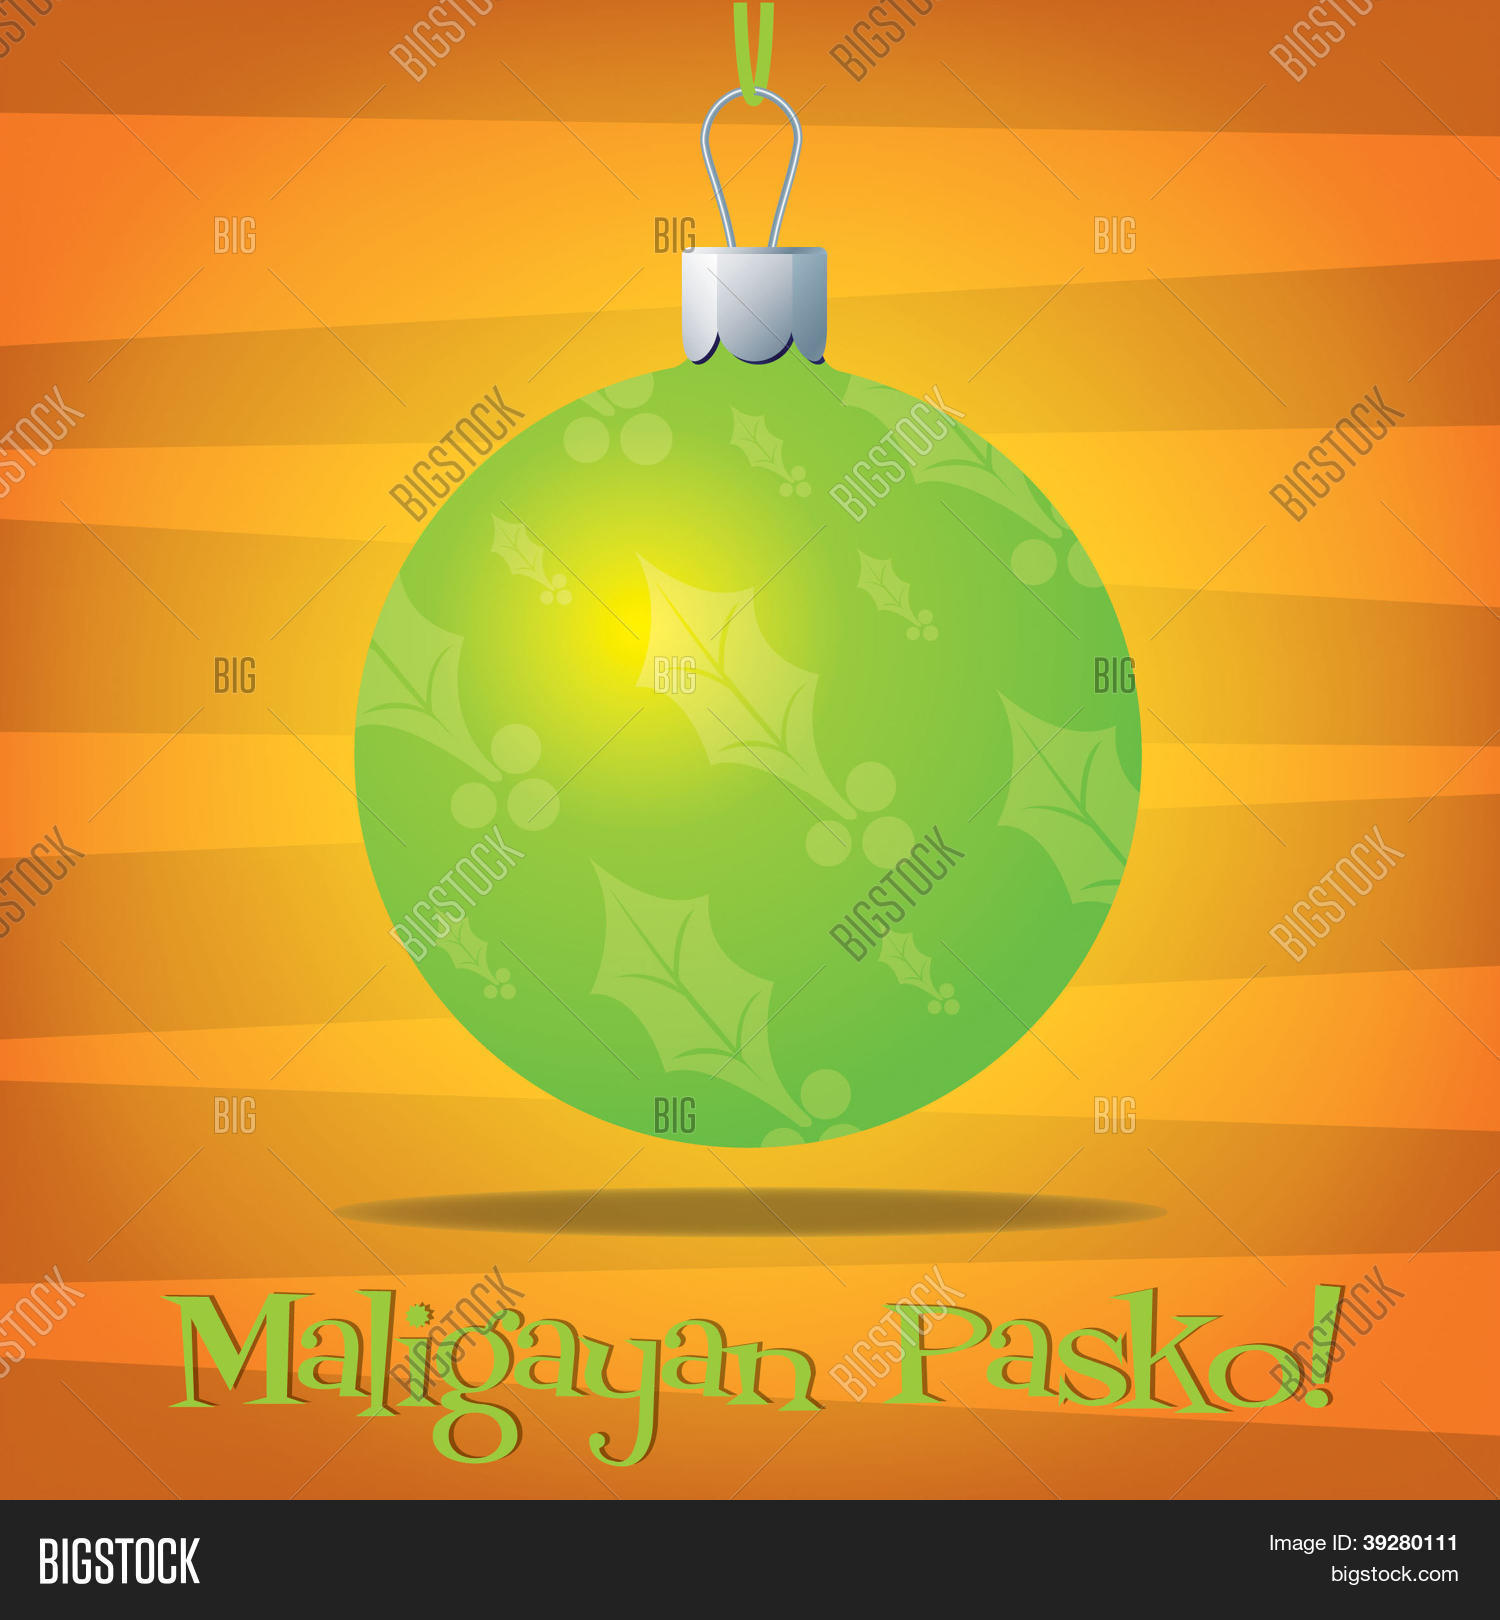 Merry Christmas In Tagalog.Merry Christmas Vector Photo Free Trial Bigstock